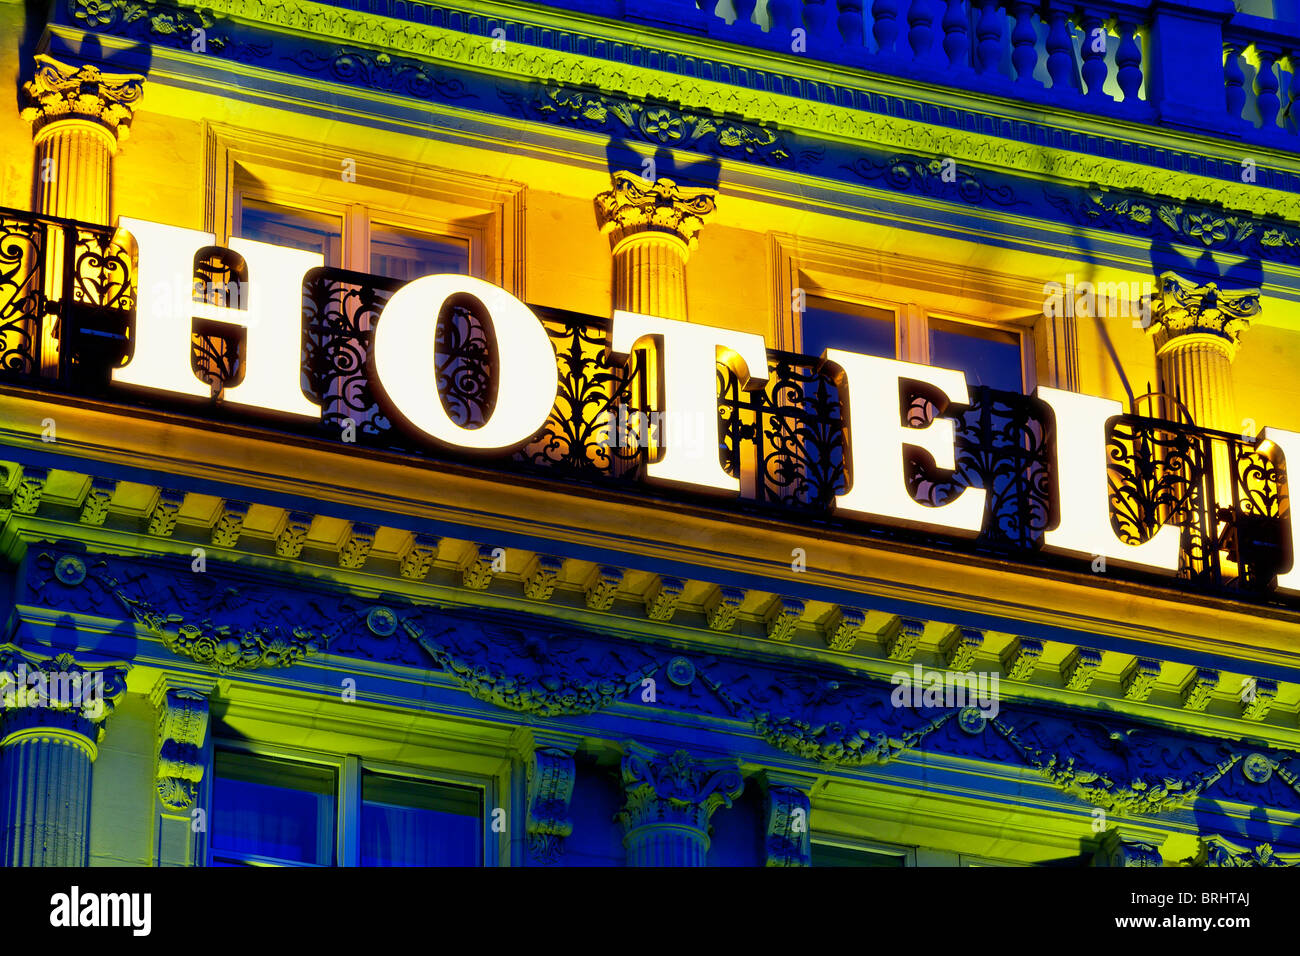 France, Paris, Hotel Sign - Stock Image